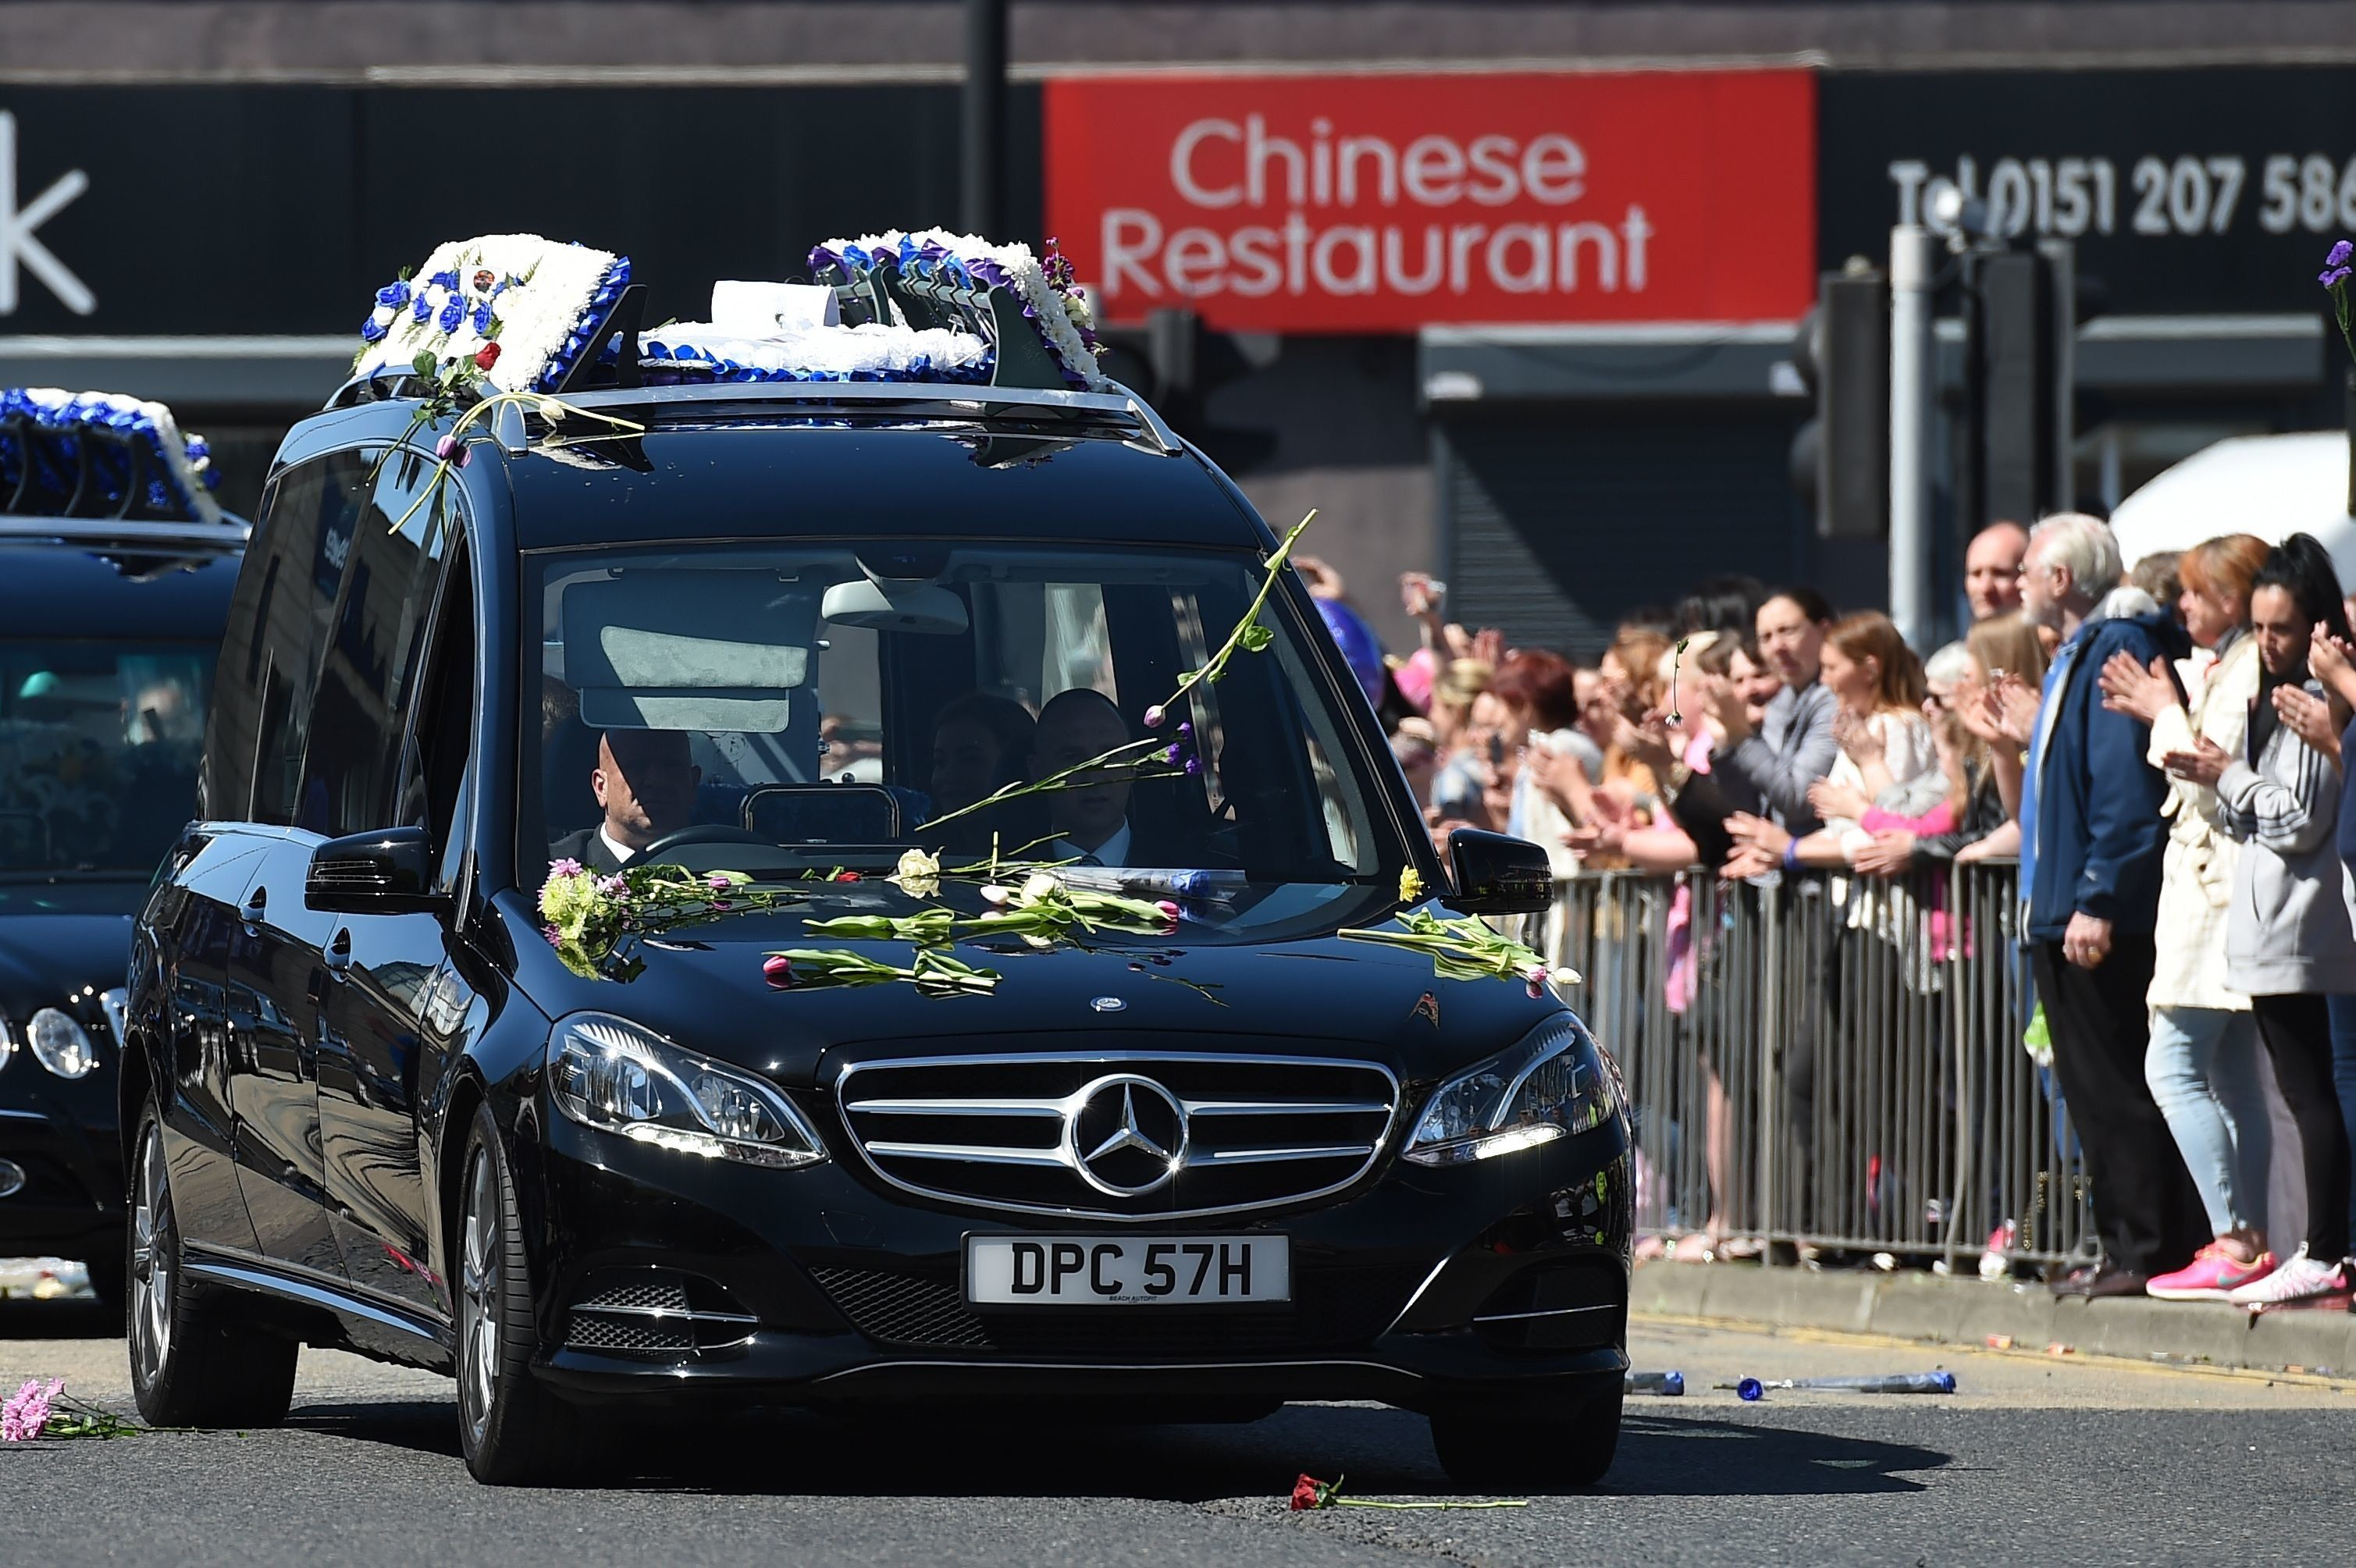 PAUL ELLIS via Getty Images                   Crowds clapped and threw flowers as the funeral cortege drove past